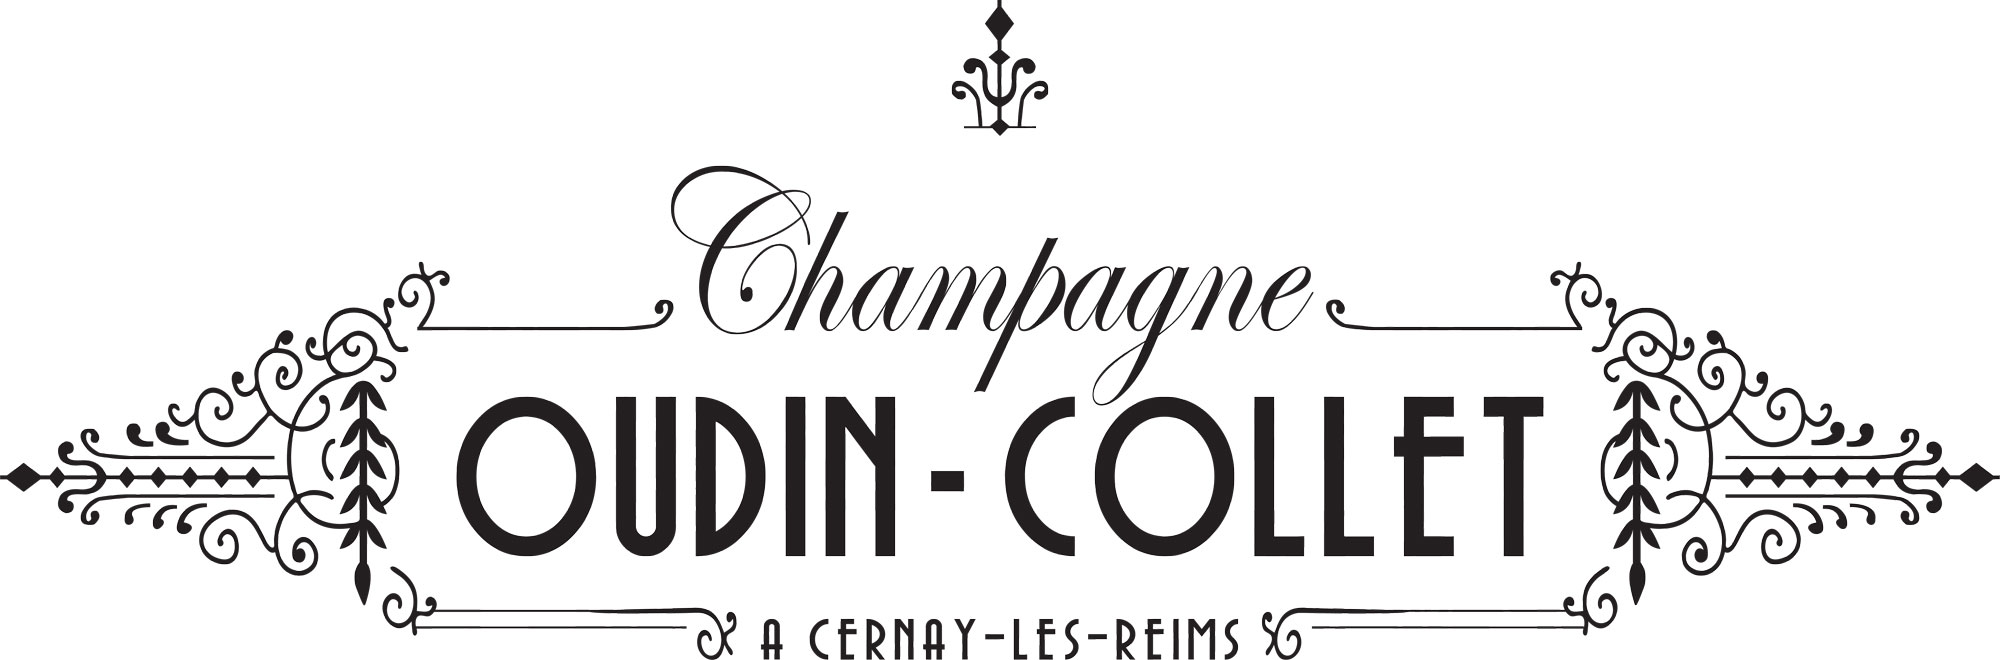 Oudin-Collet Champagne